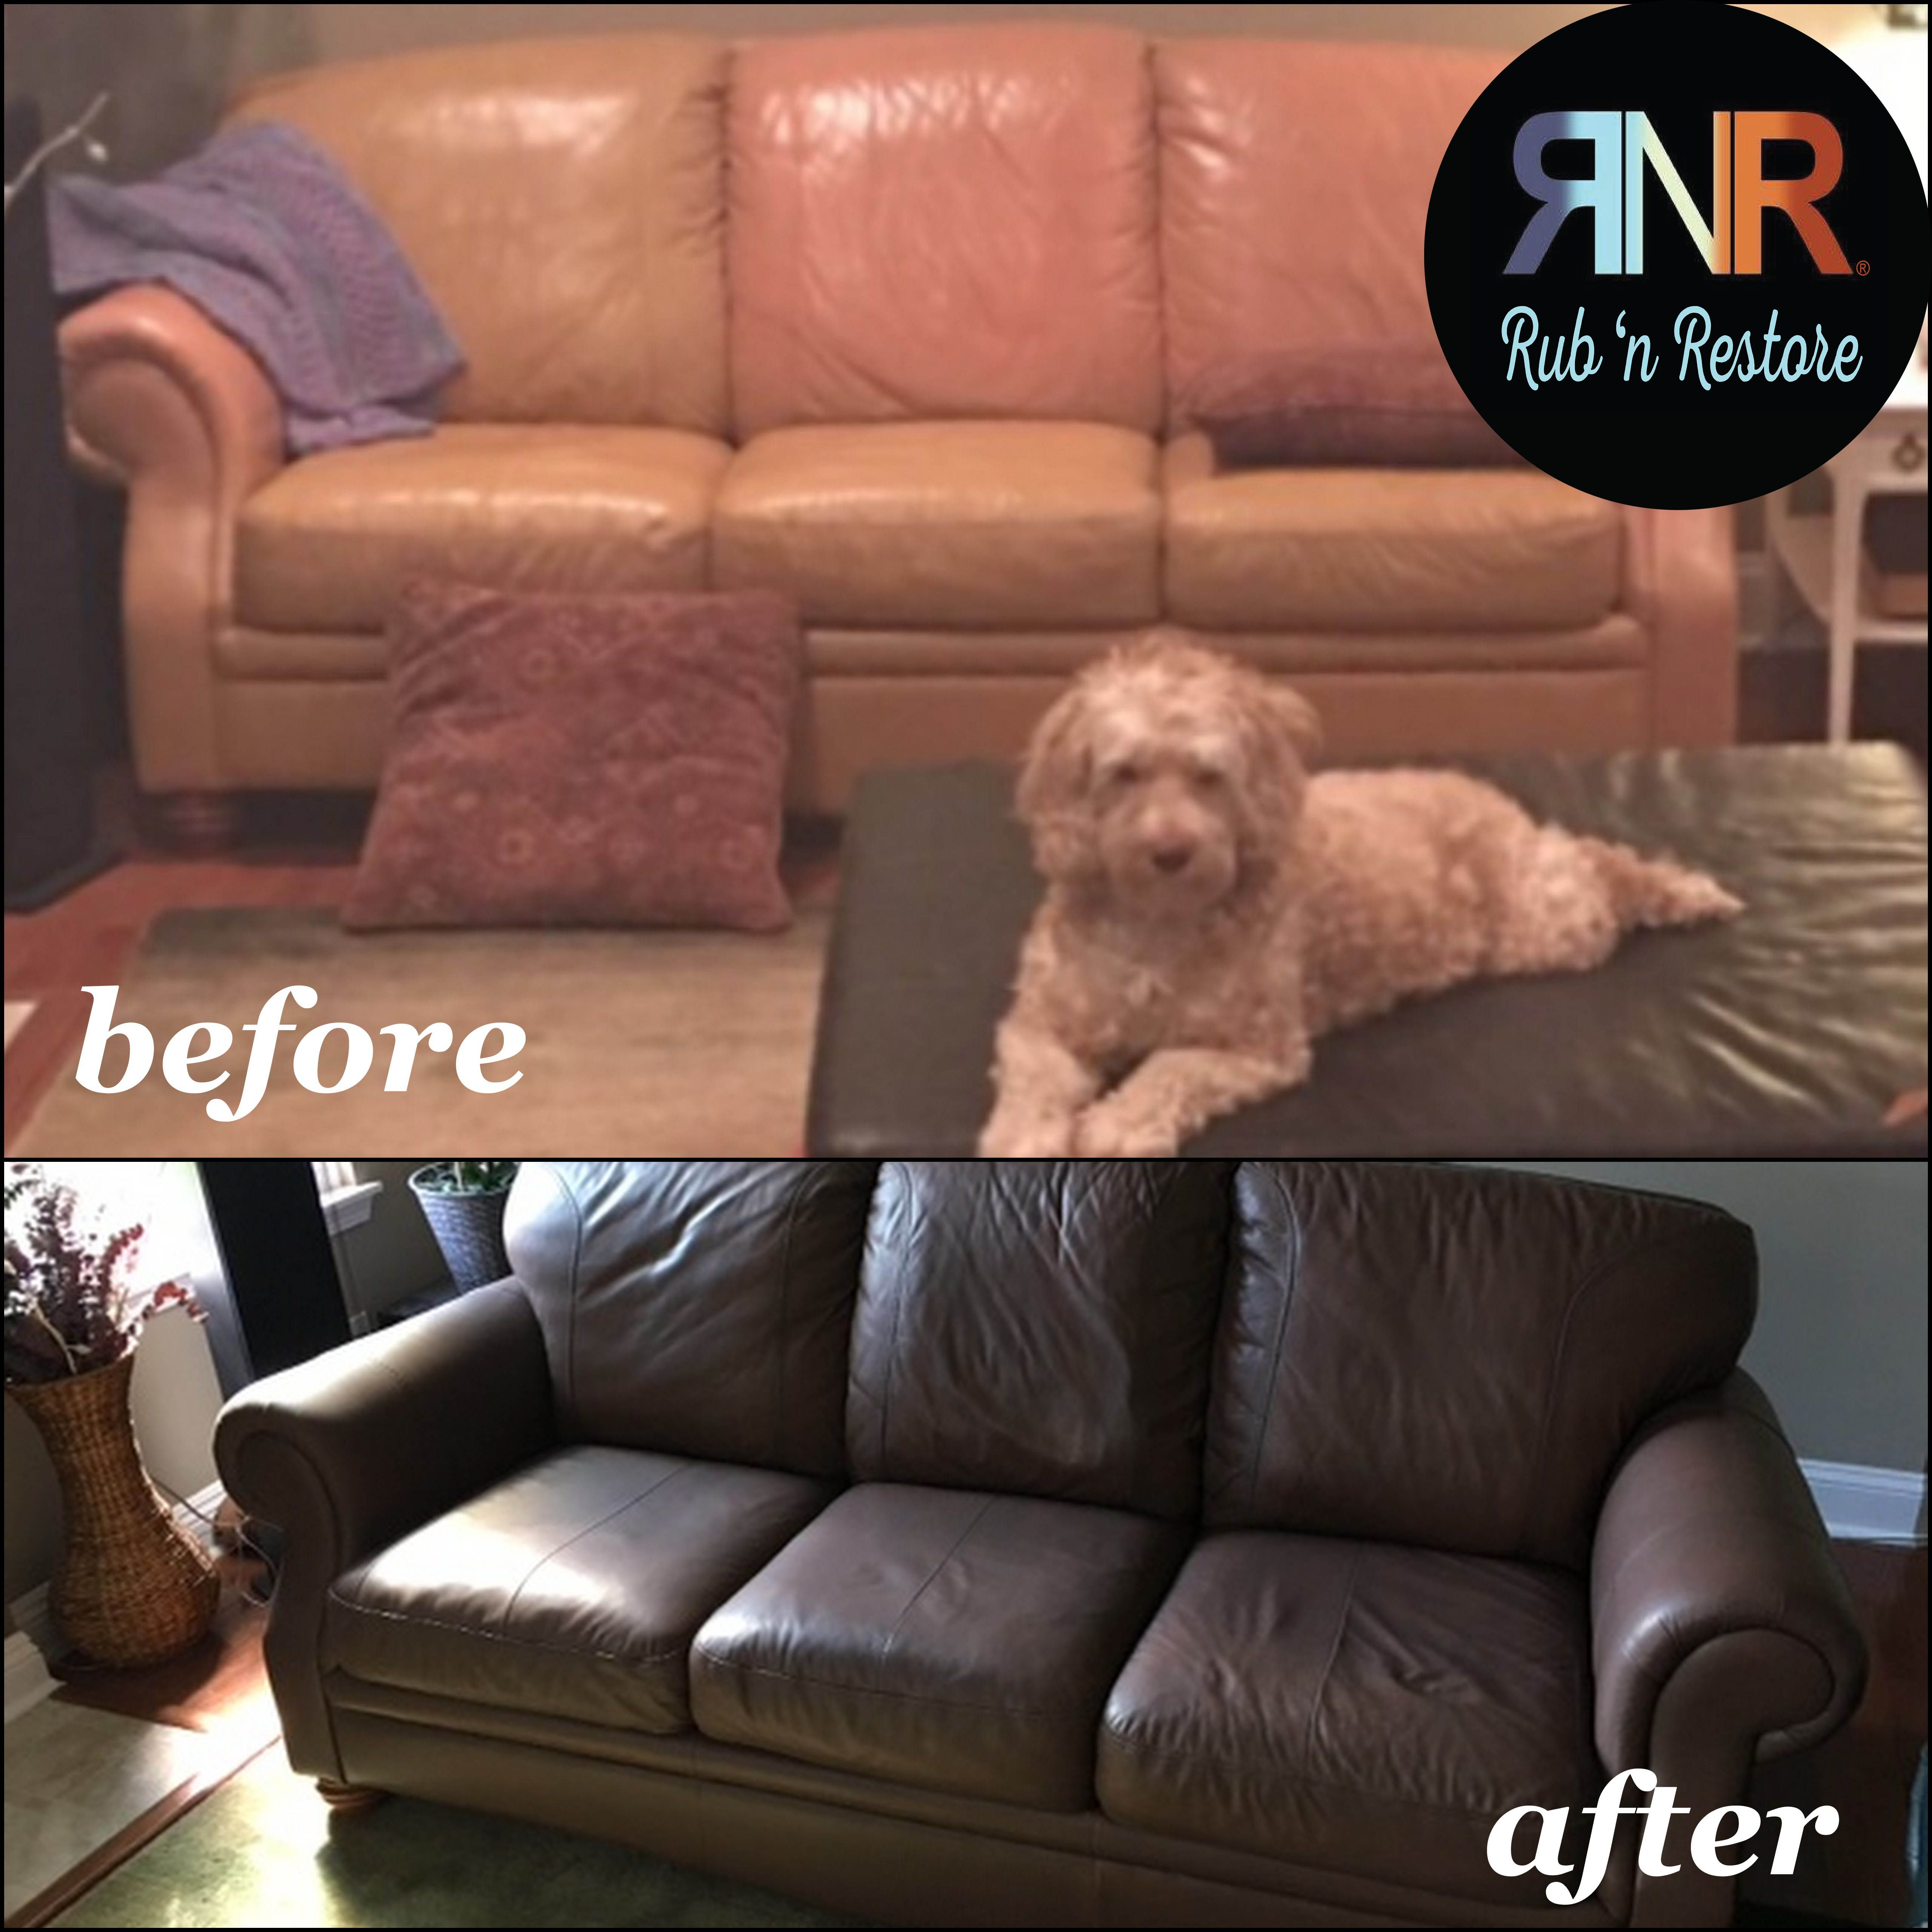 Cindy transformed her leather sofa in 2014 and recently emailed to